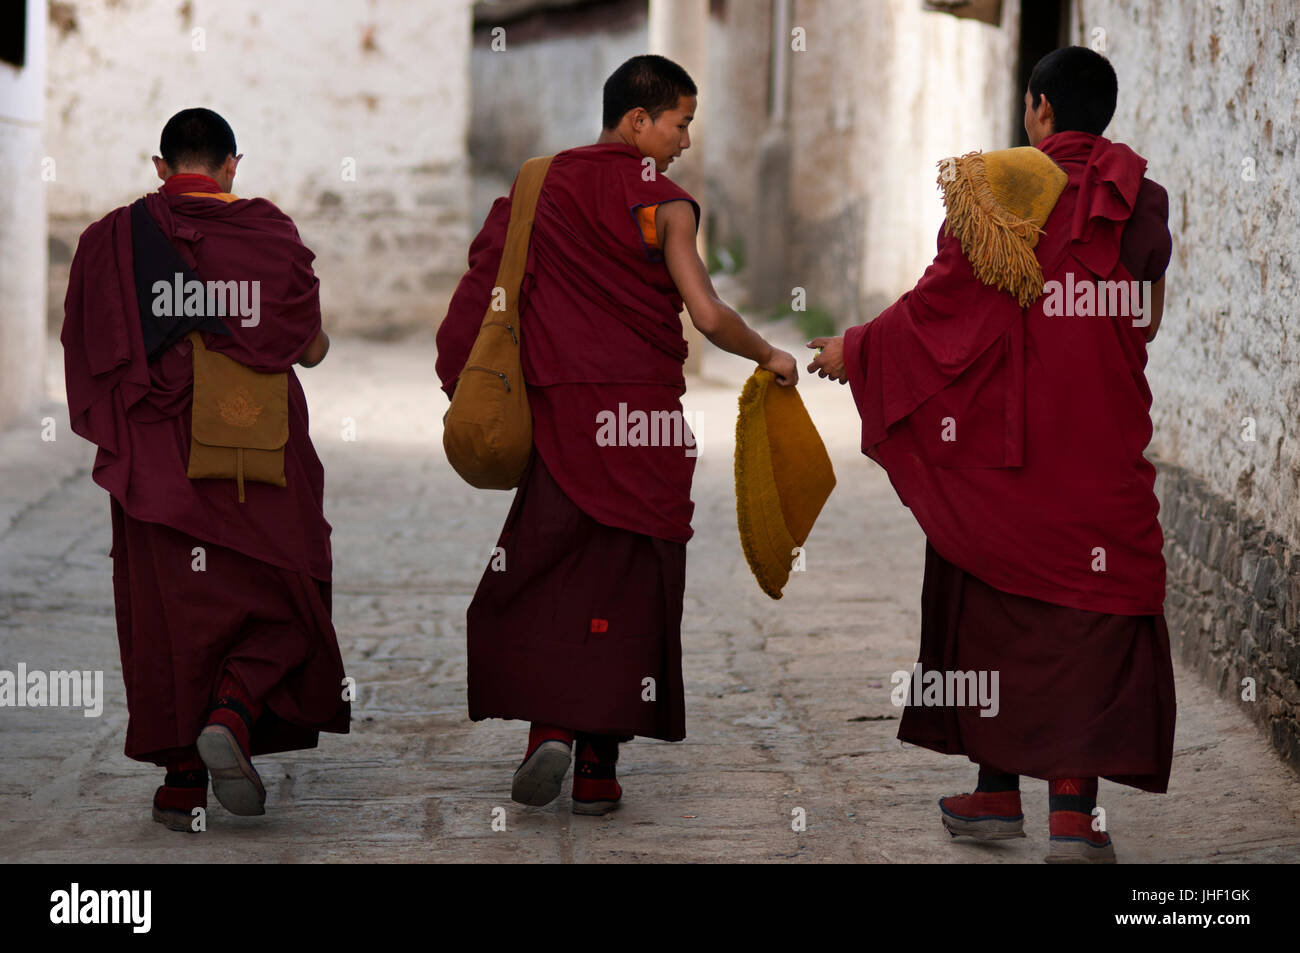 Monks inside Tashilumpo Monastery at Shigatse, Tibet, China. - Stock Image